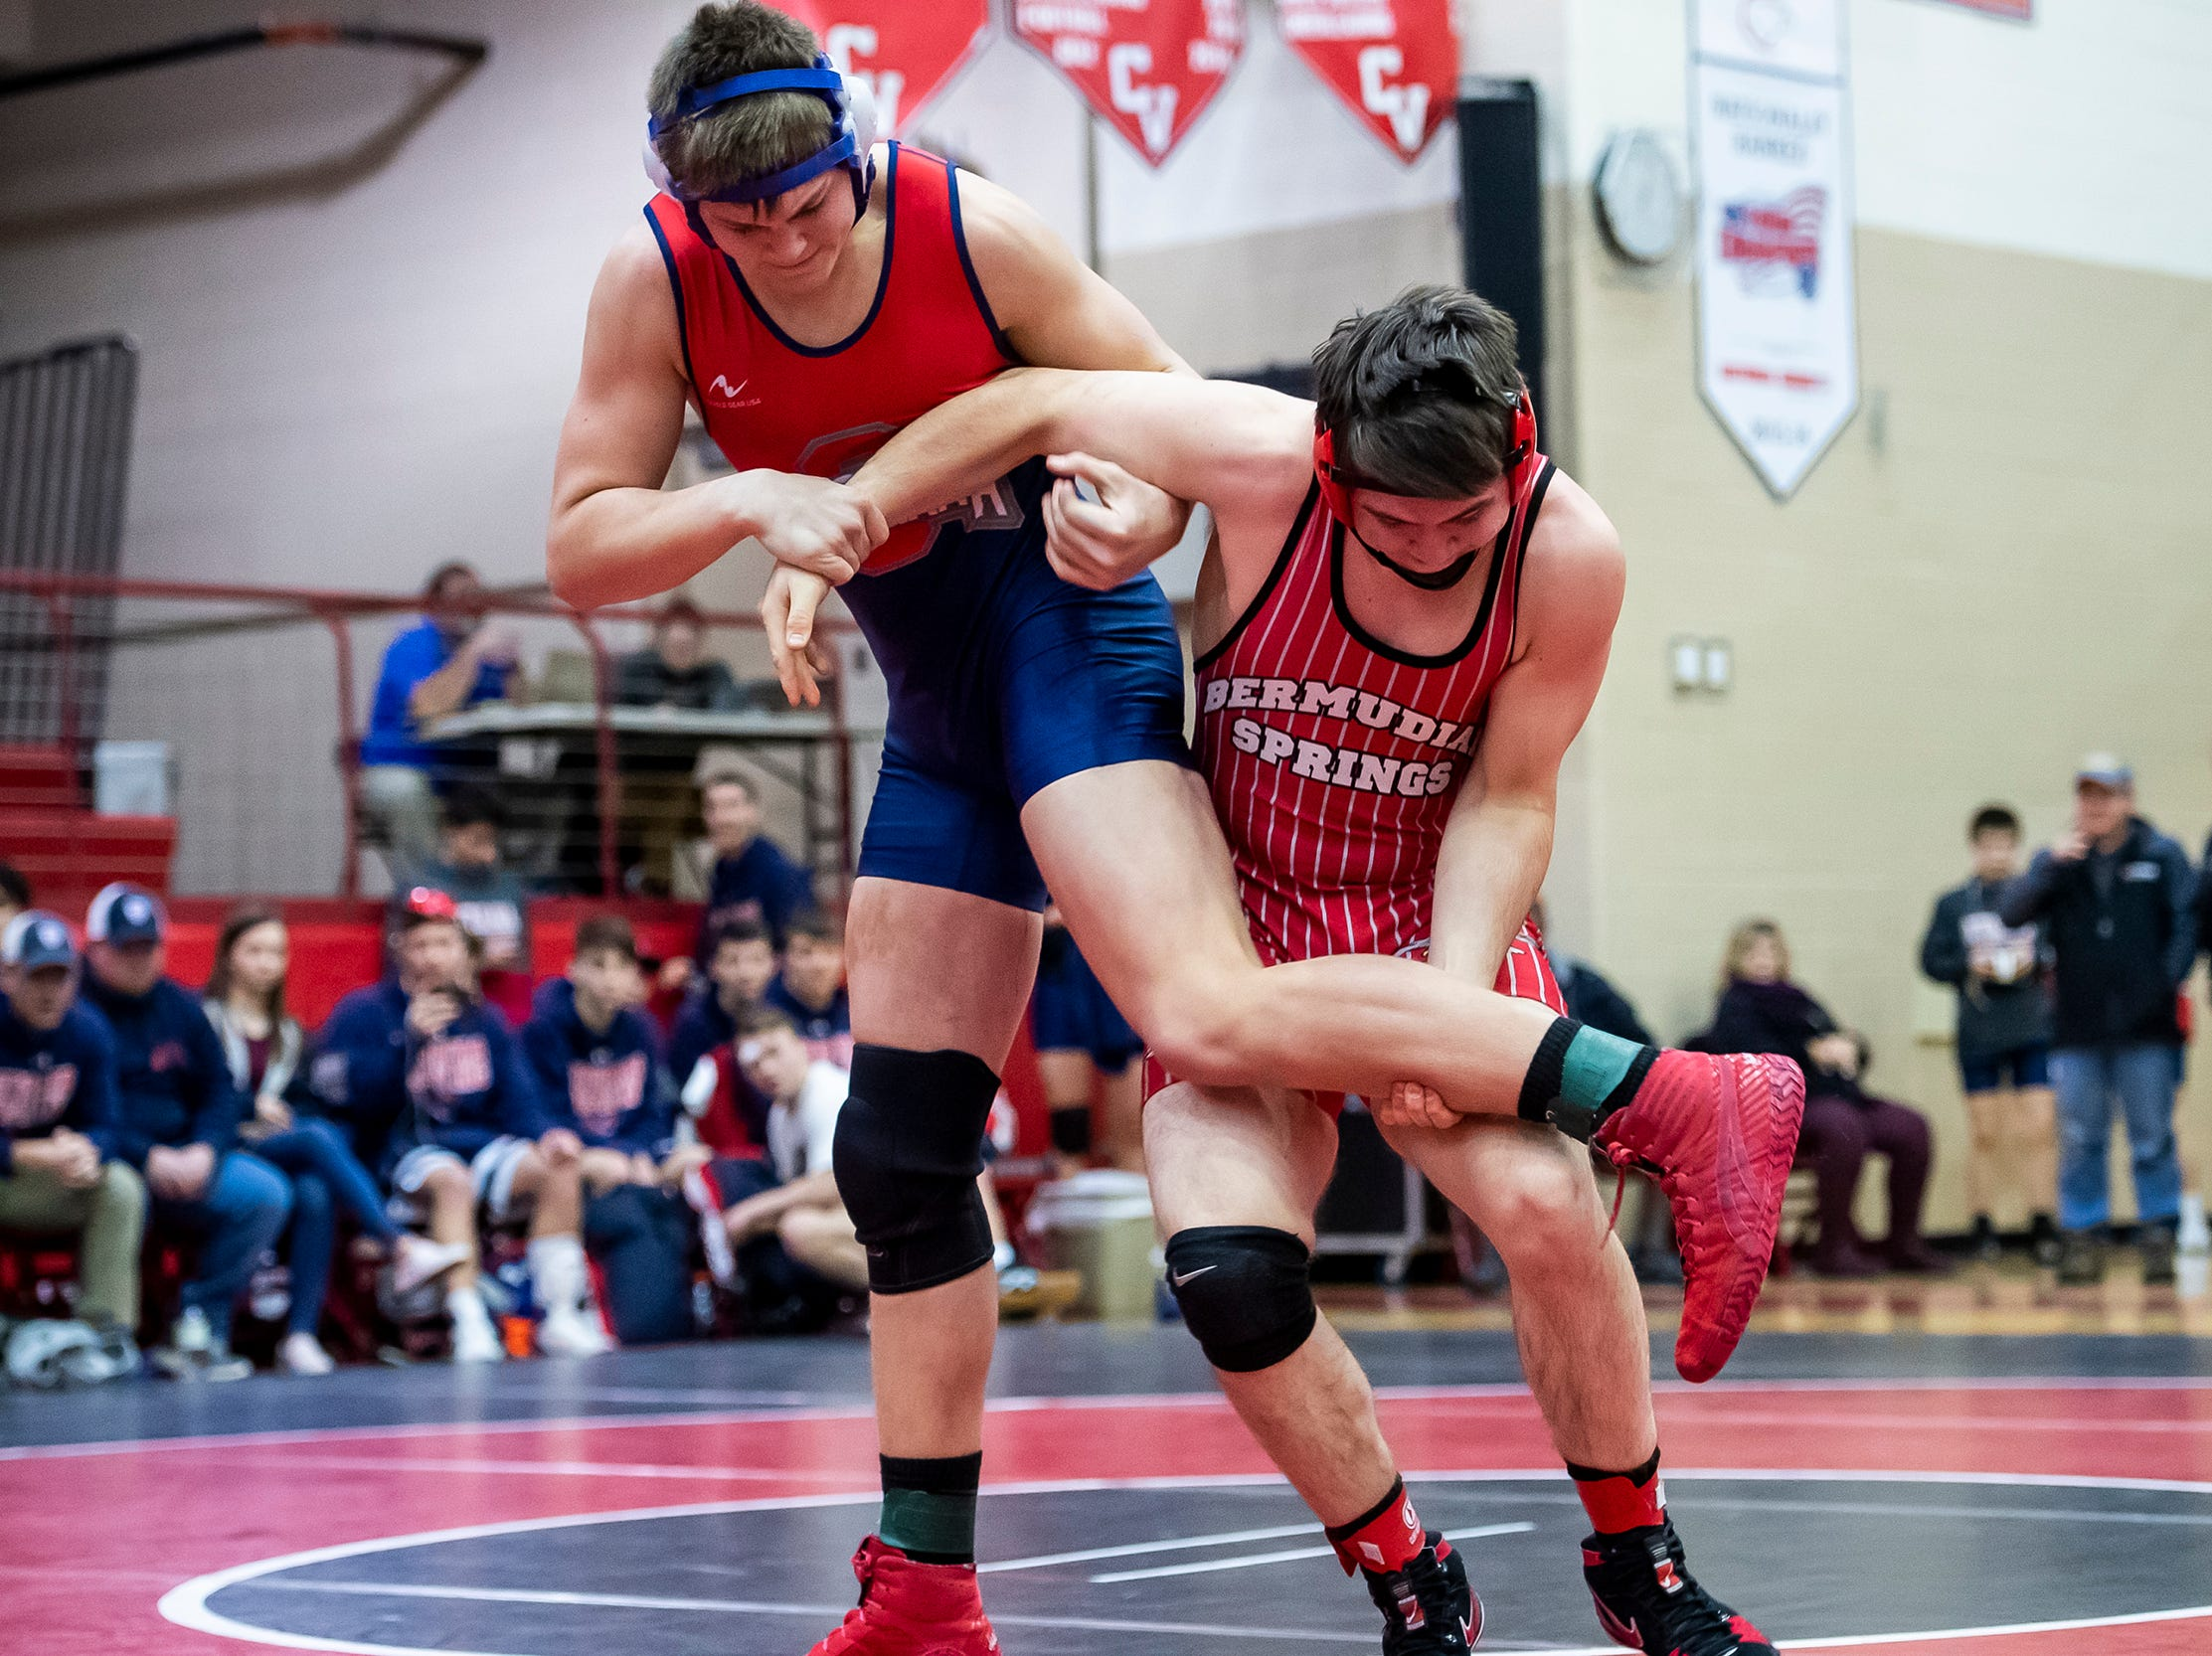 Bermudian Springs' Josh Keller, right, wrestles Octorara's Jacob Eckman in the 220-pound bout during a PIAA District III 2A quarterfinal match at Cumberland Valley High School January 31, 2019. The Eagles beat Octorara 42-23.